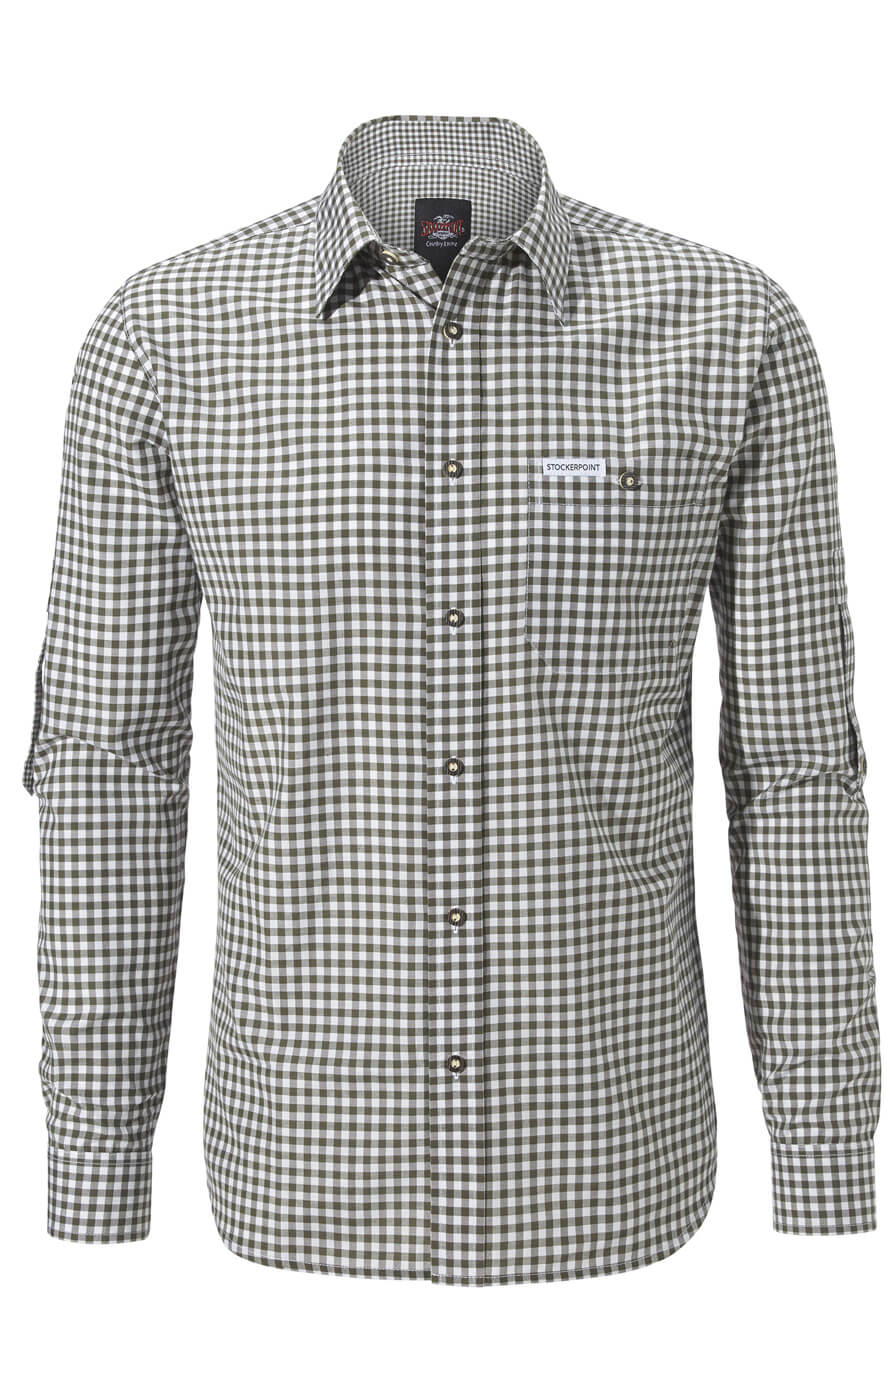 weitere Bilder von German traditional shirt checkered Campos2 reed